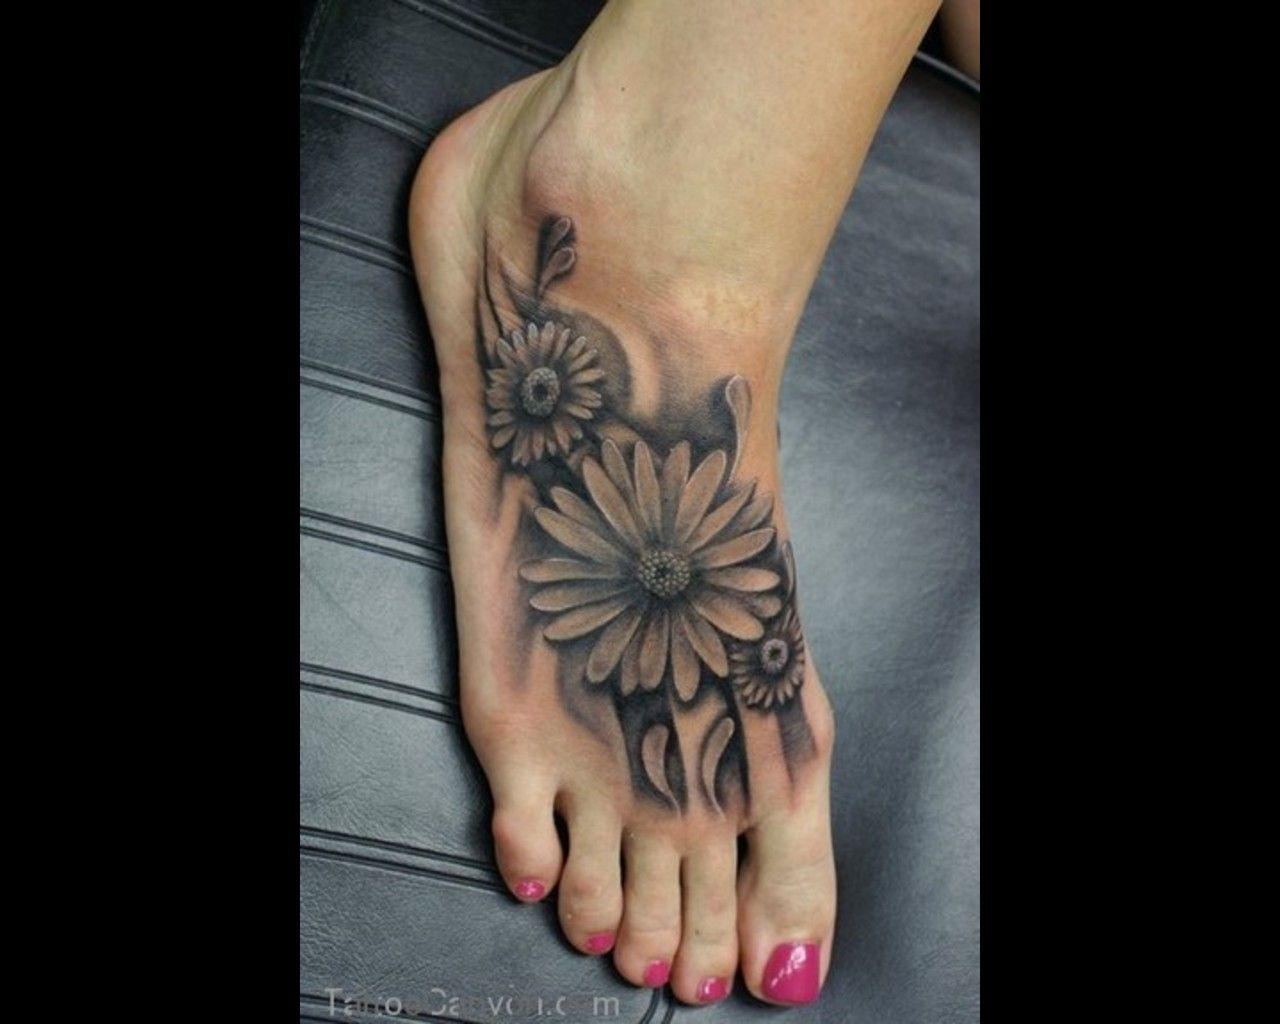 Large Foot Tattoo Designs Google Search Tattoos For Women Flowers Sunflower Foot Tattoos Foot Tattoos